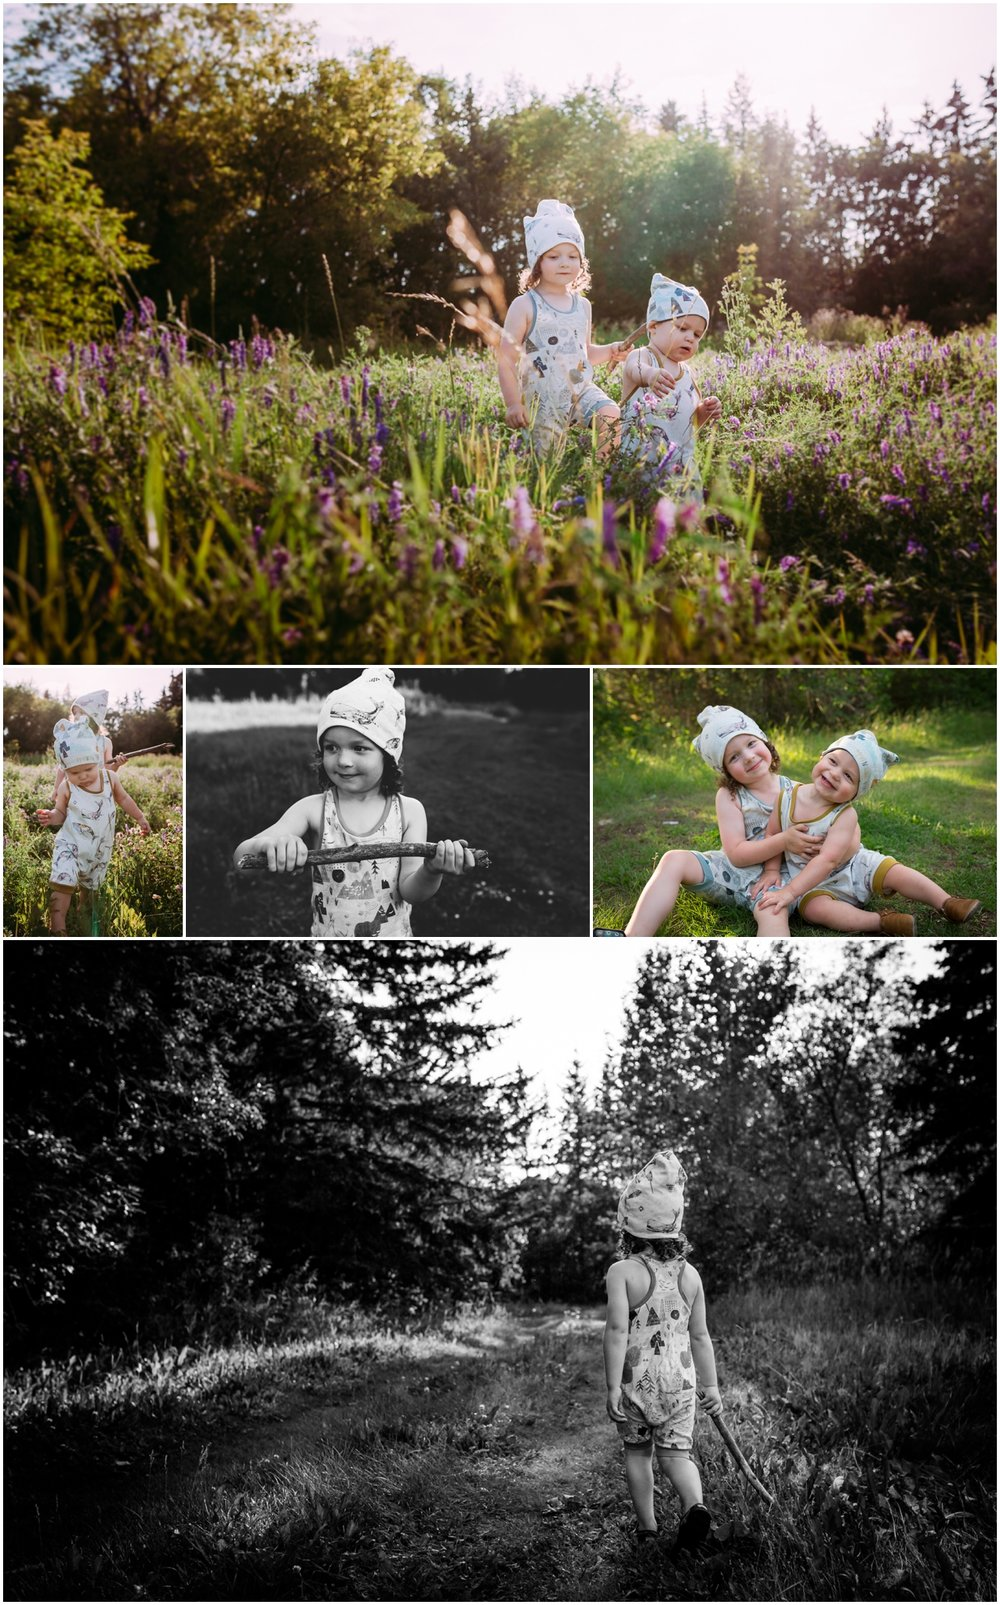 Edmonton Lifestyle Photography - Best of 2016 - Brothers - Summer - Olive Me Handmade